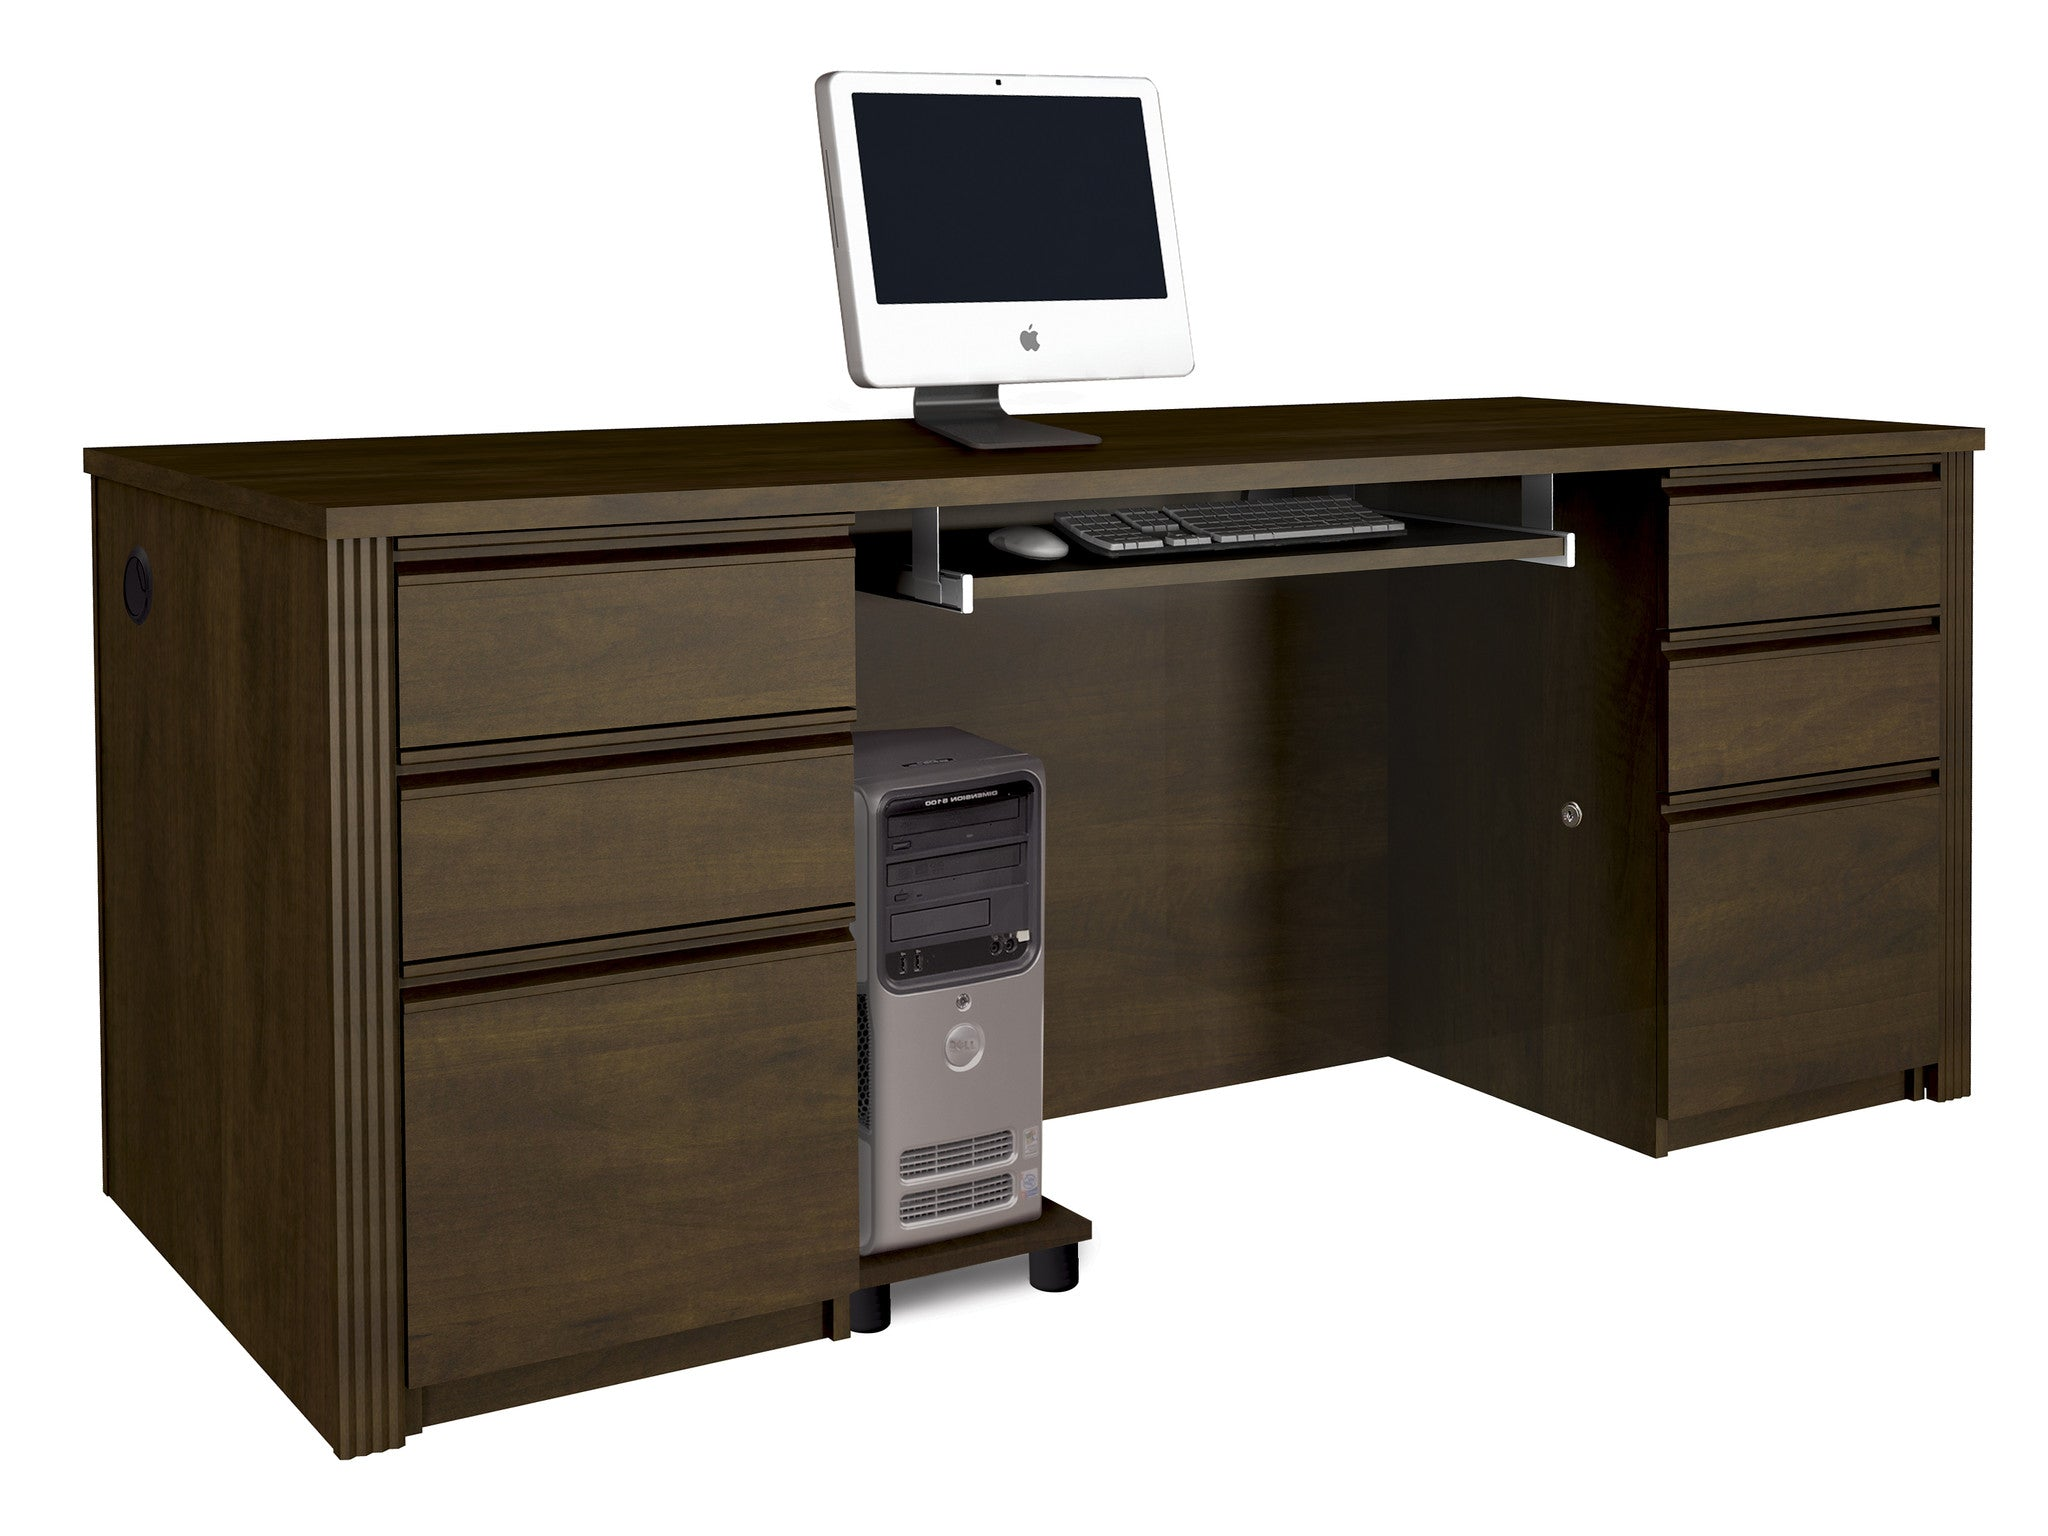 Prestige Modern Double Pedestal Desk in Chocolate